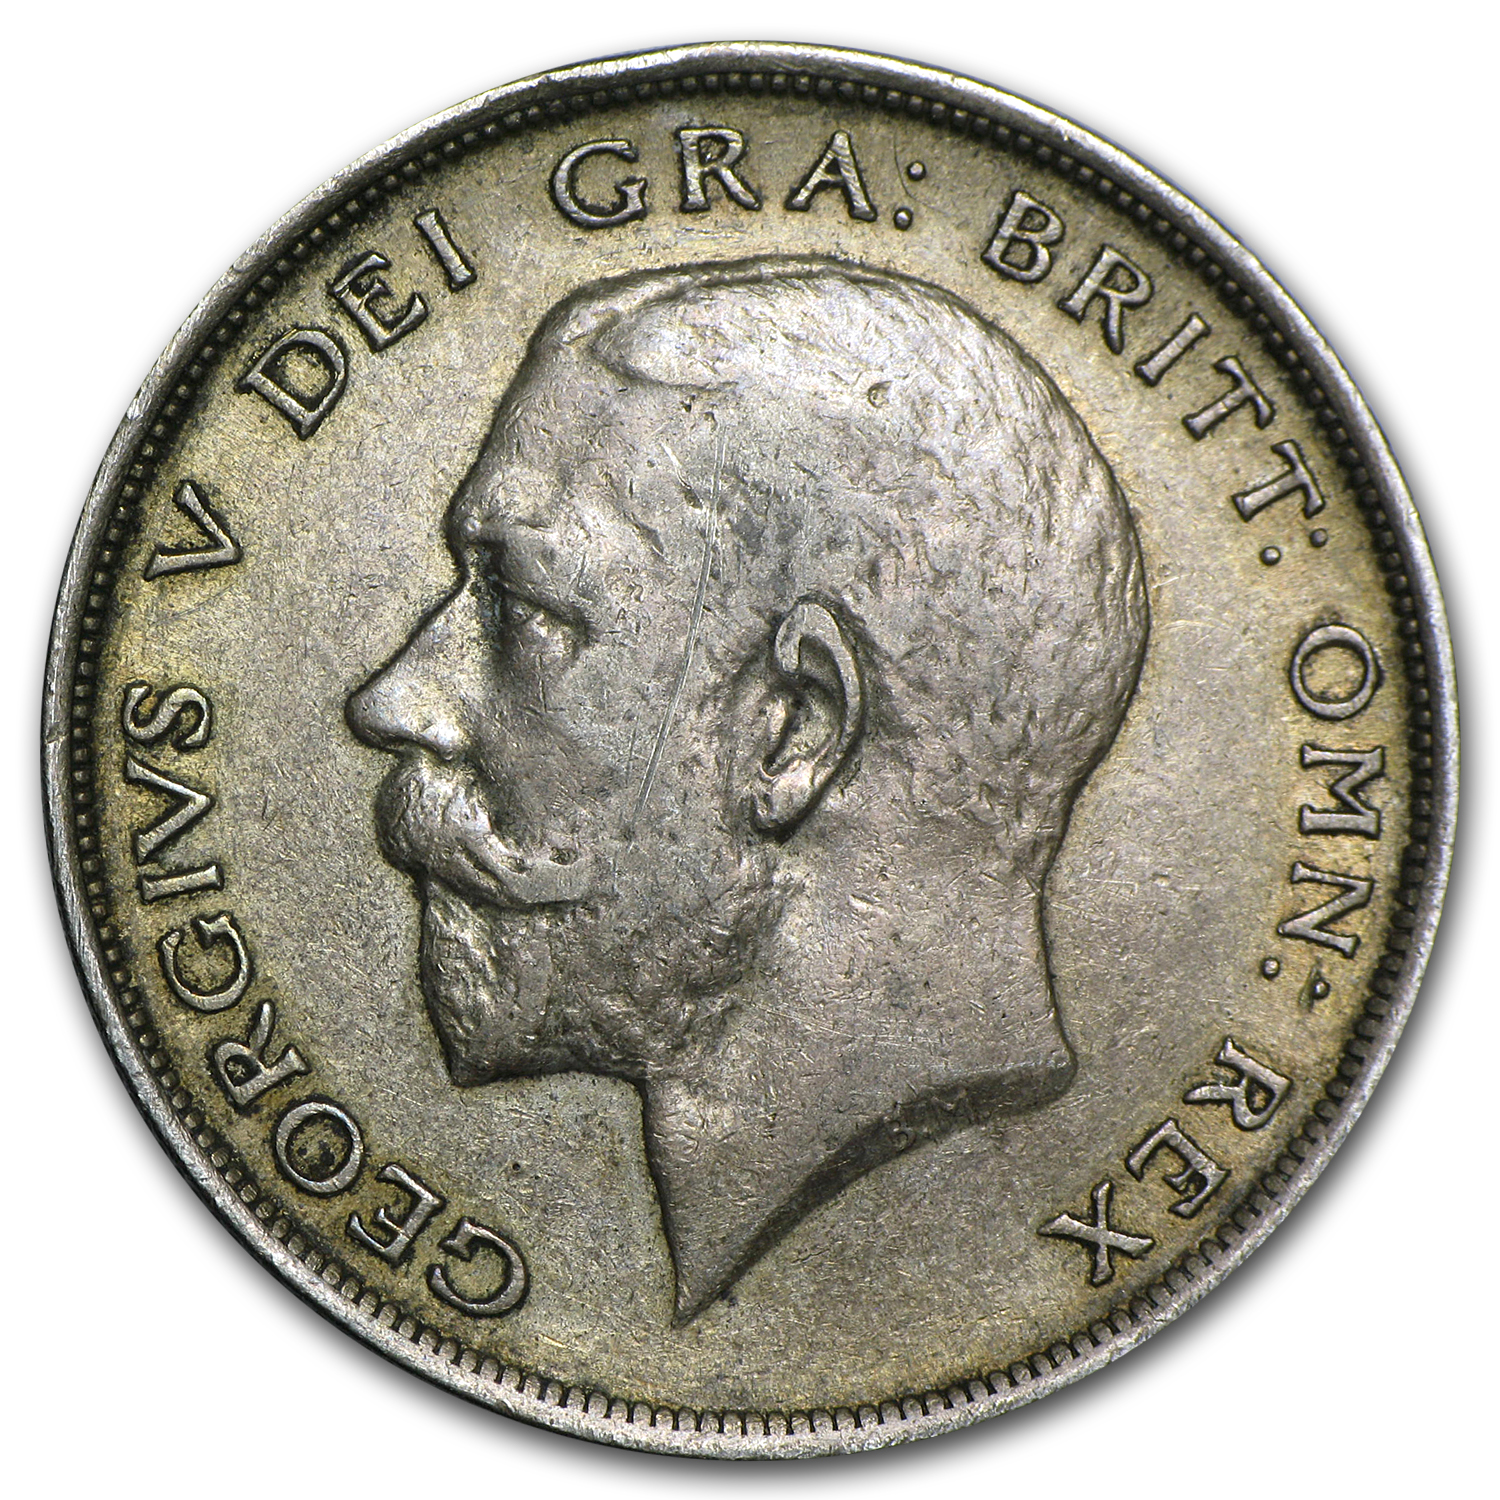 Great Britain 1913 Silver 1/2 Crown EF George V